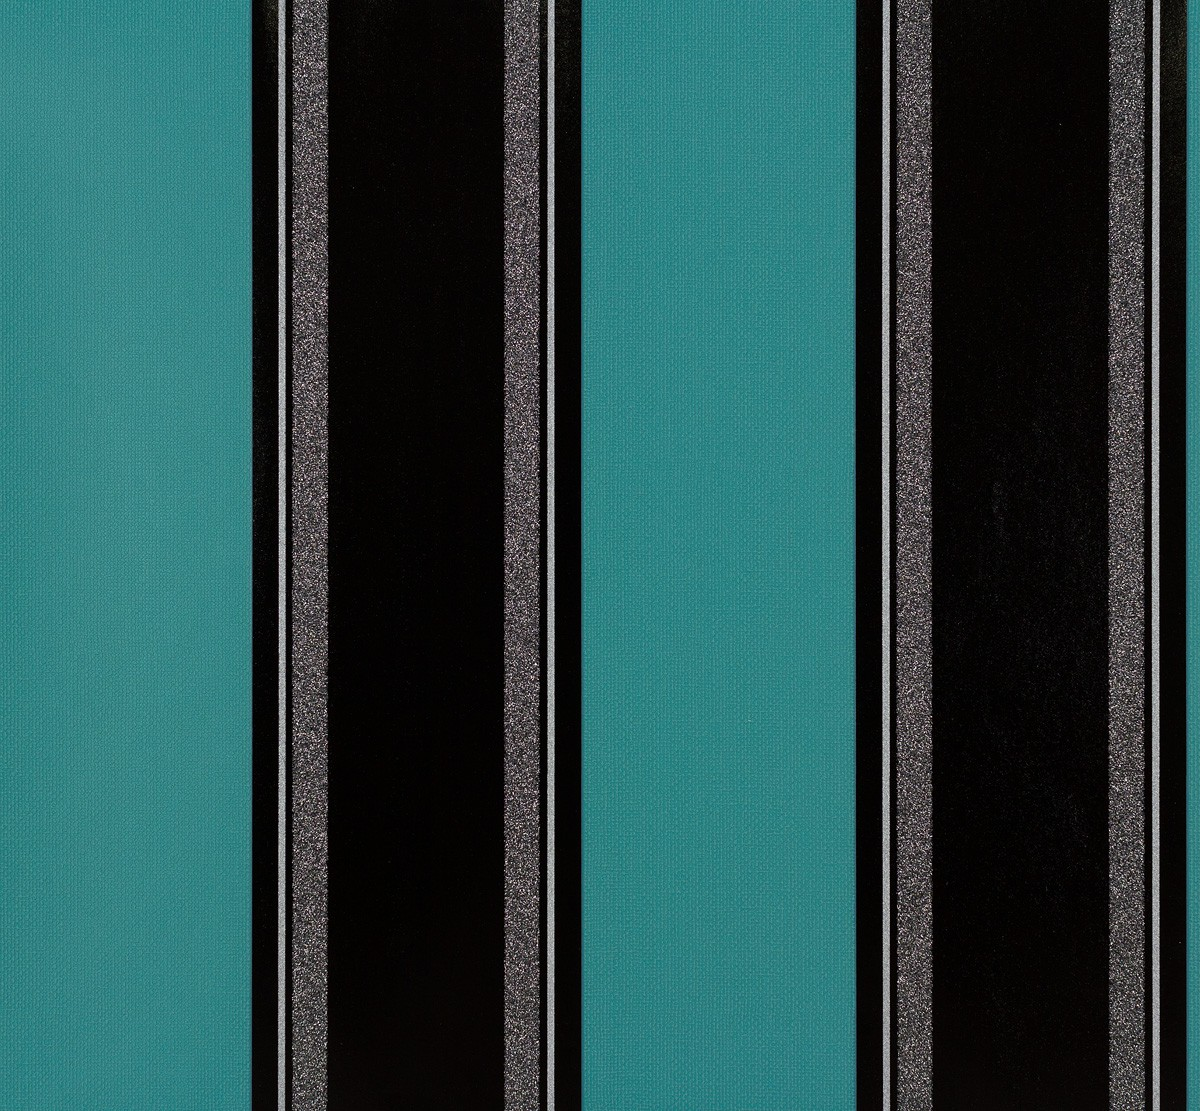 wallpaper striped turquoise black livingwalls 95704 3. Black Bedroom Furniture Sets. Home Design Ideas